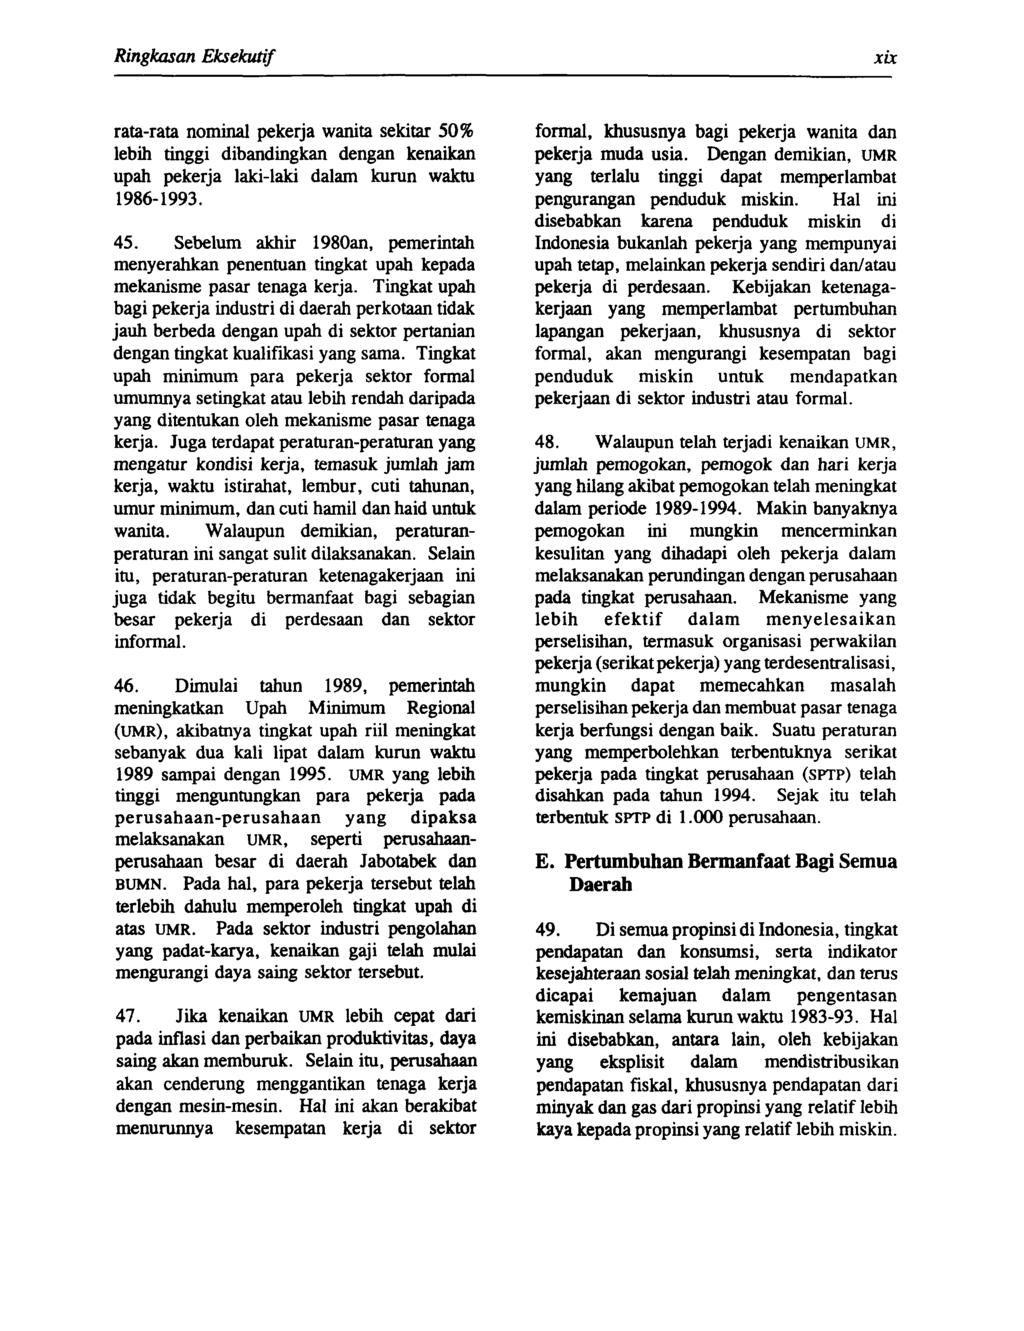 Indonesia Dimensions Of Growth Pdf